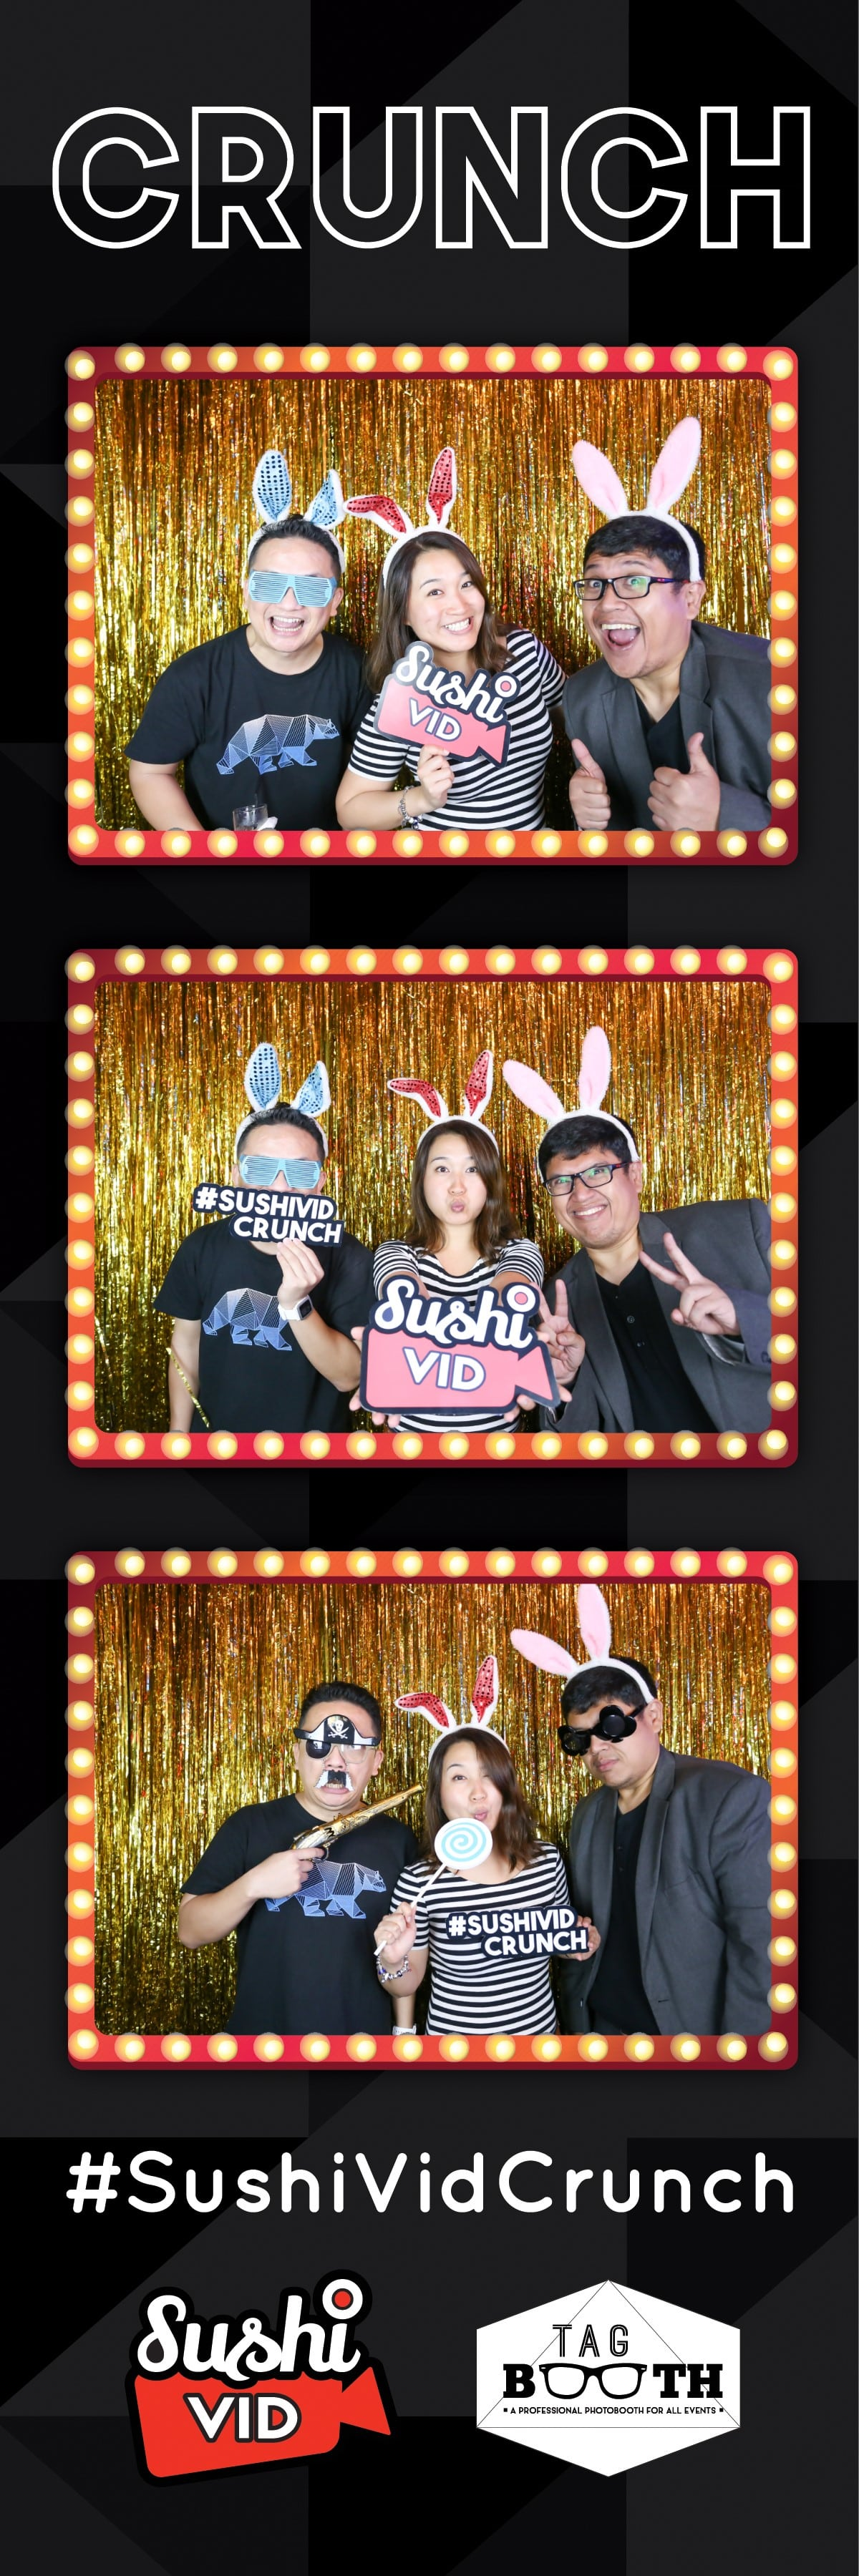 Sushivid+crunch+tagbooth1+34